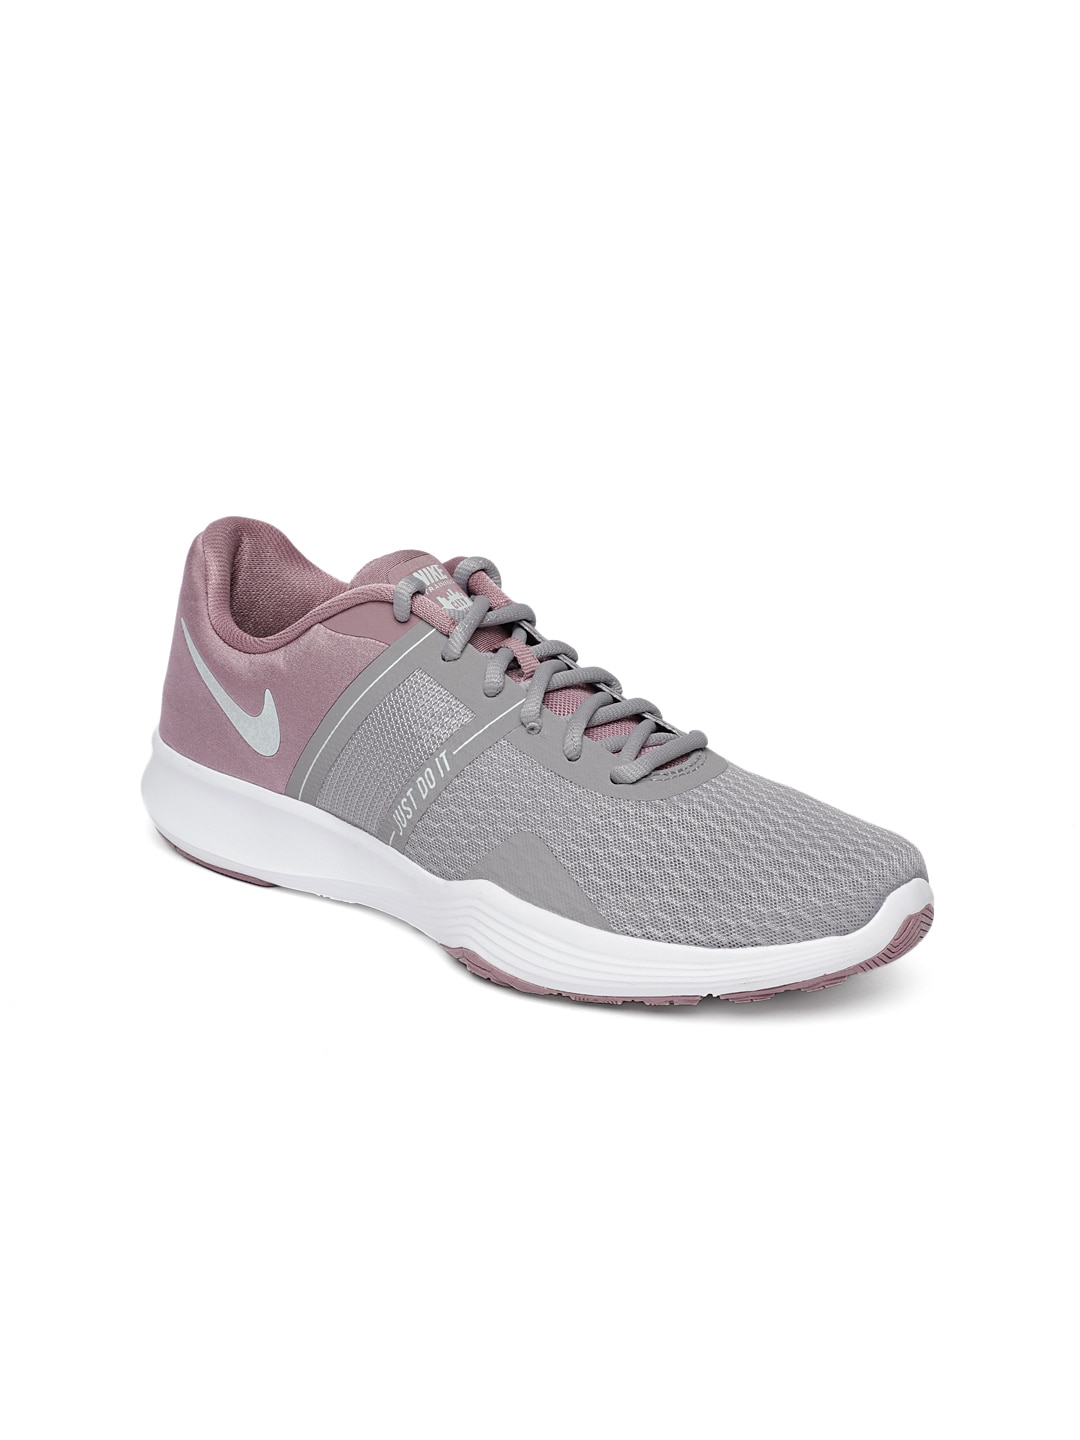 27925cce62e Nike Training Shoes - Buy Nike Training Shoes For Men   Women in India